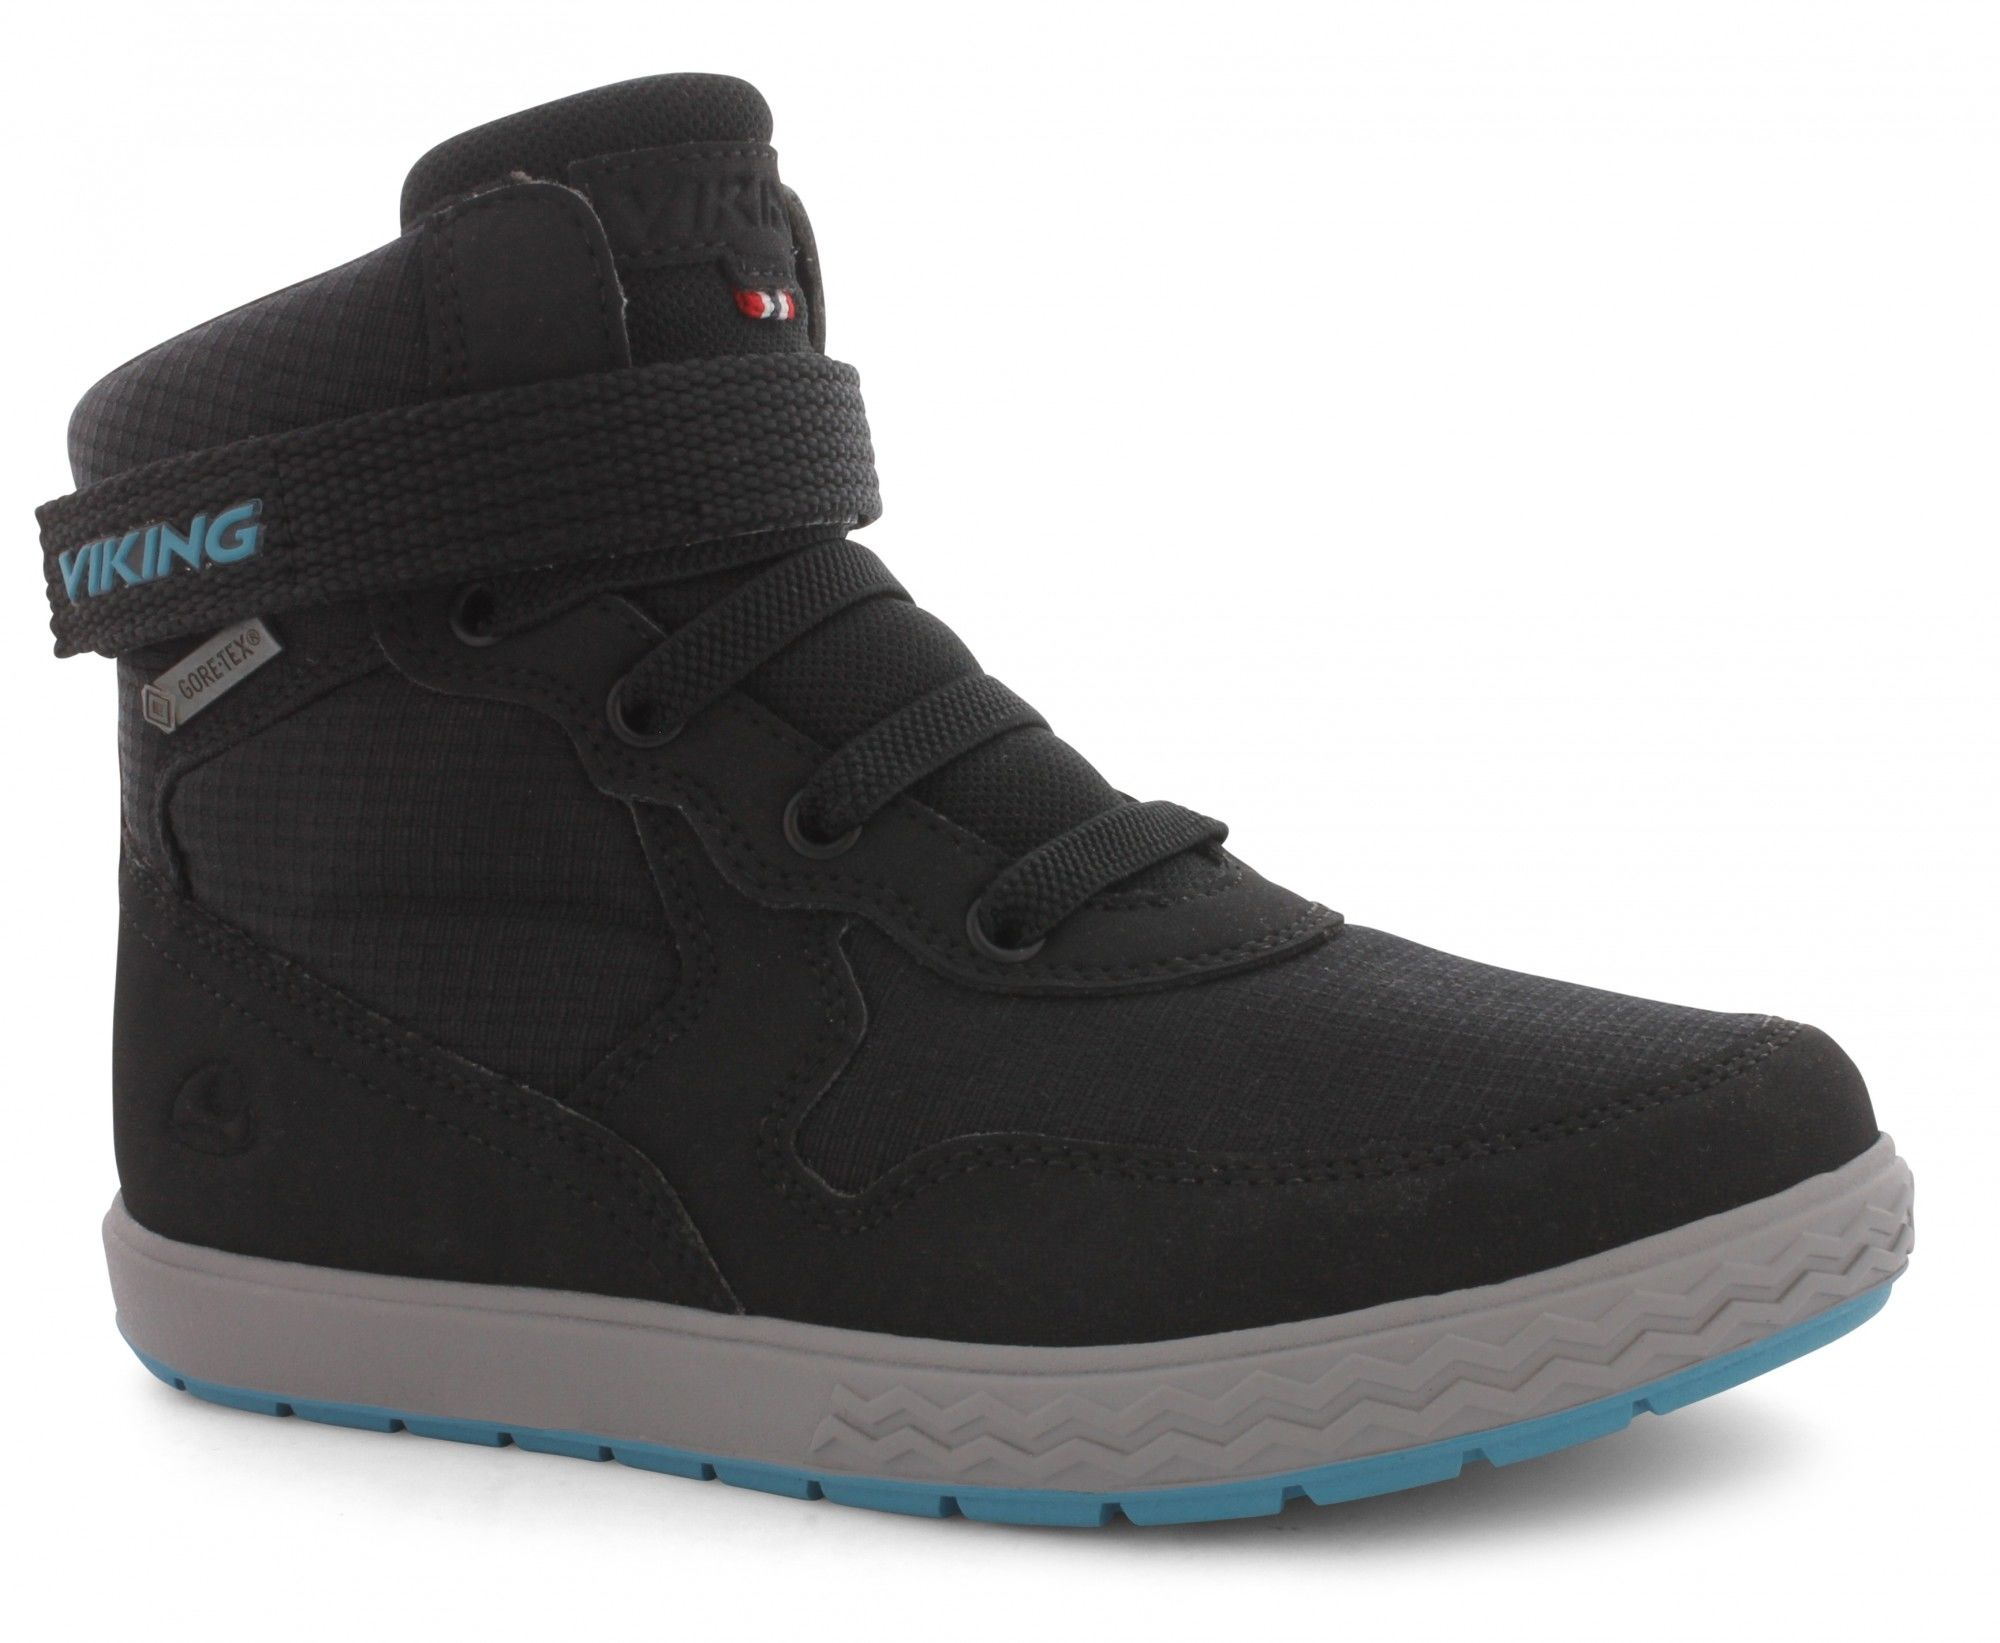 Viking Kids Vigra Warm Gtx® | Größe EU 34 / UK 2 / US 3 |  Winterstiefel